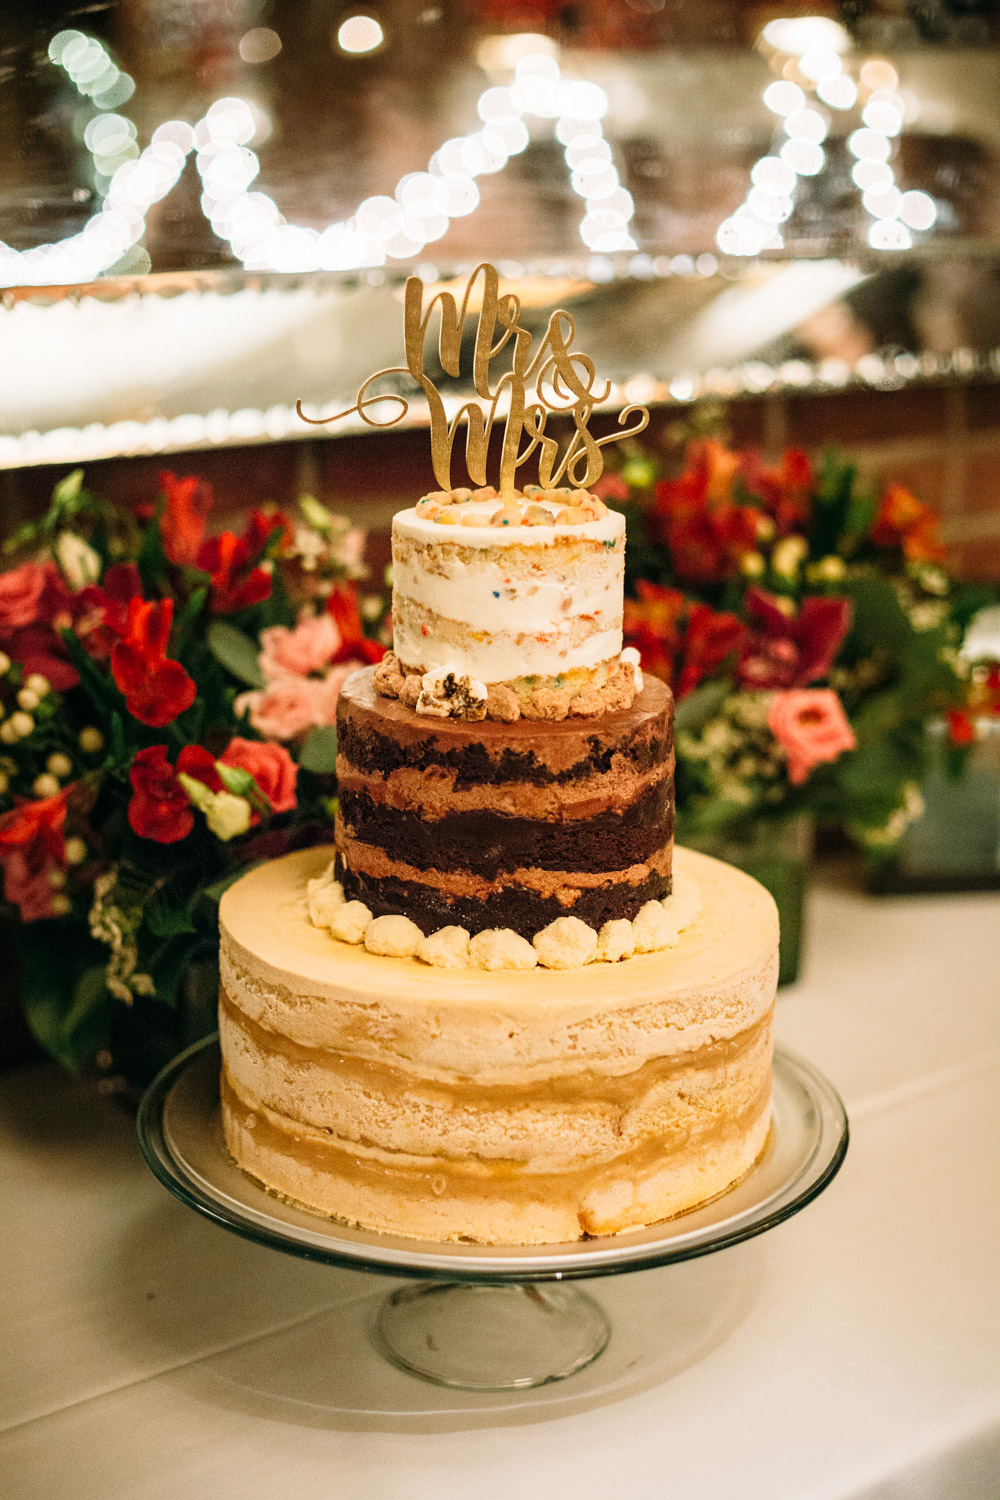 THIS delicious tiered wedding cake from Momokuku Milk Bar